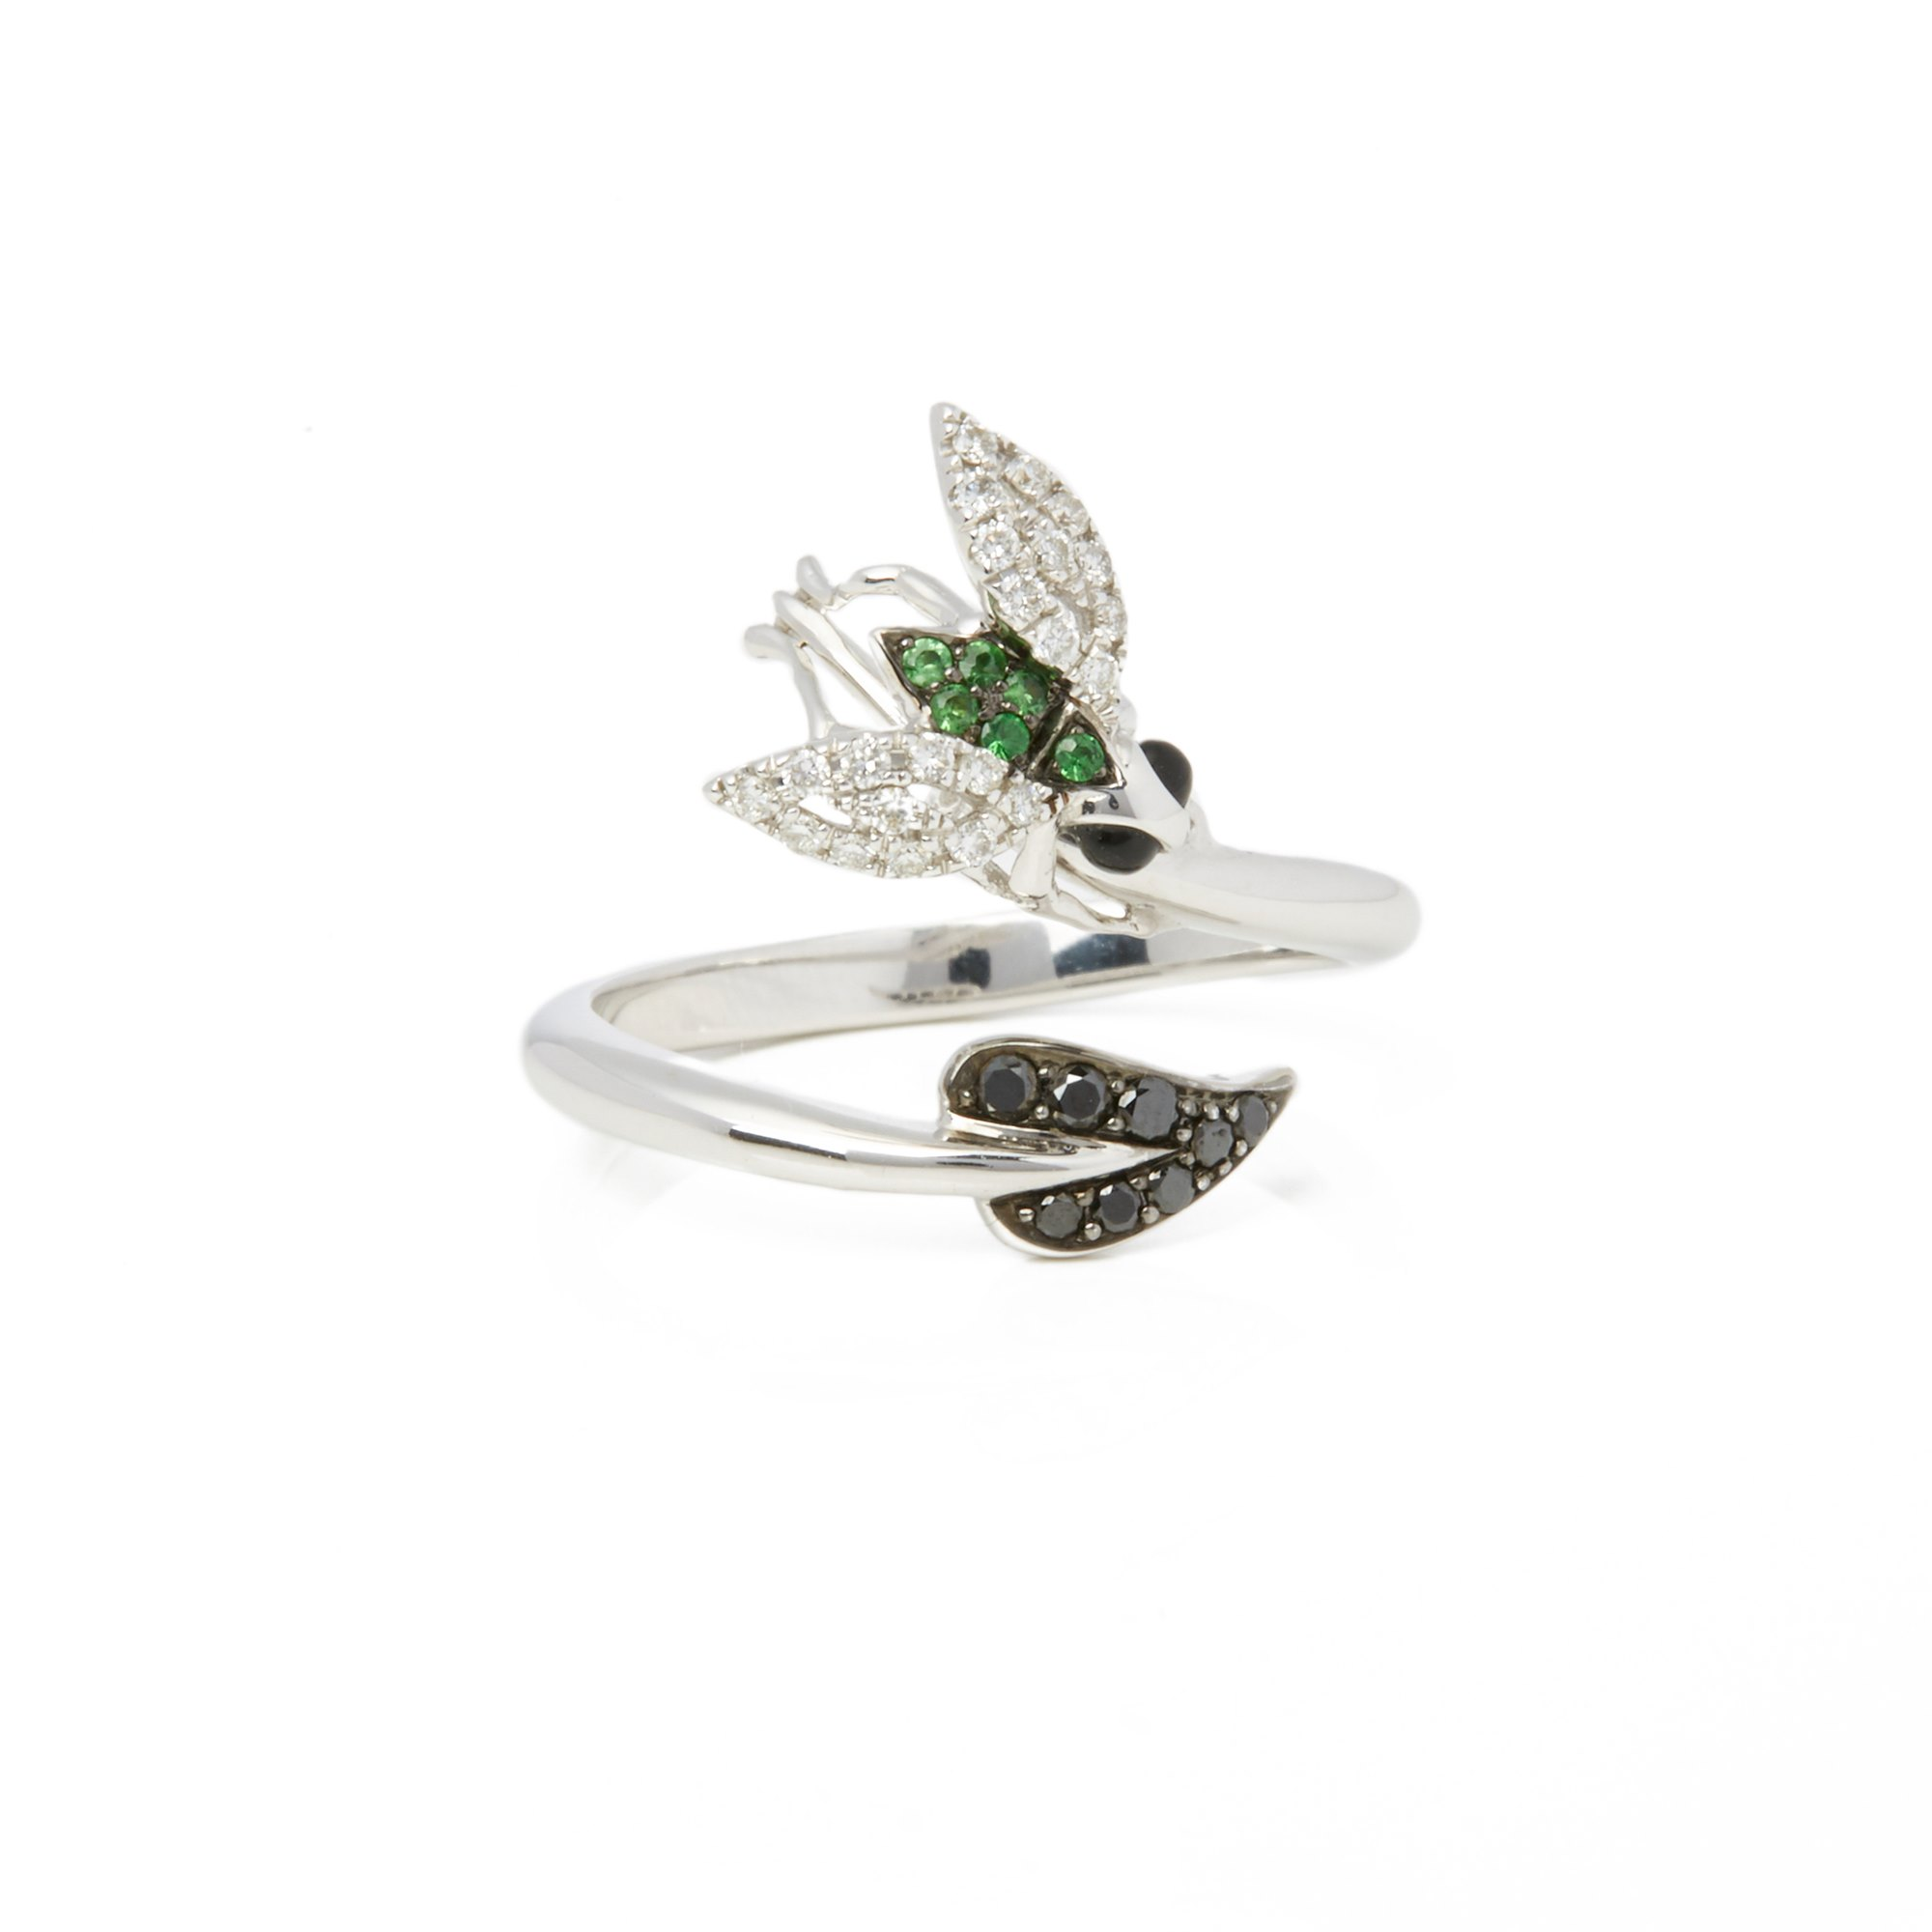 Stephen Webster Fly by NIght 18ct White Gold Tsavorite and Diamond Ring